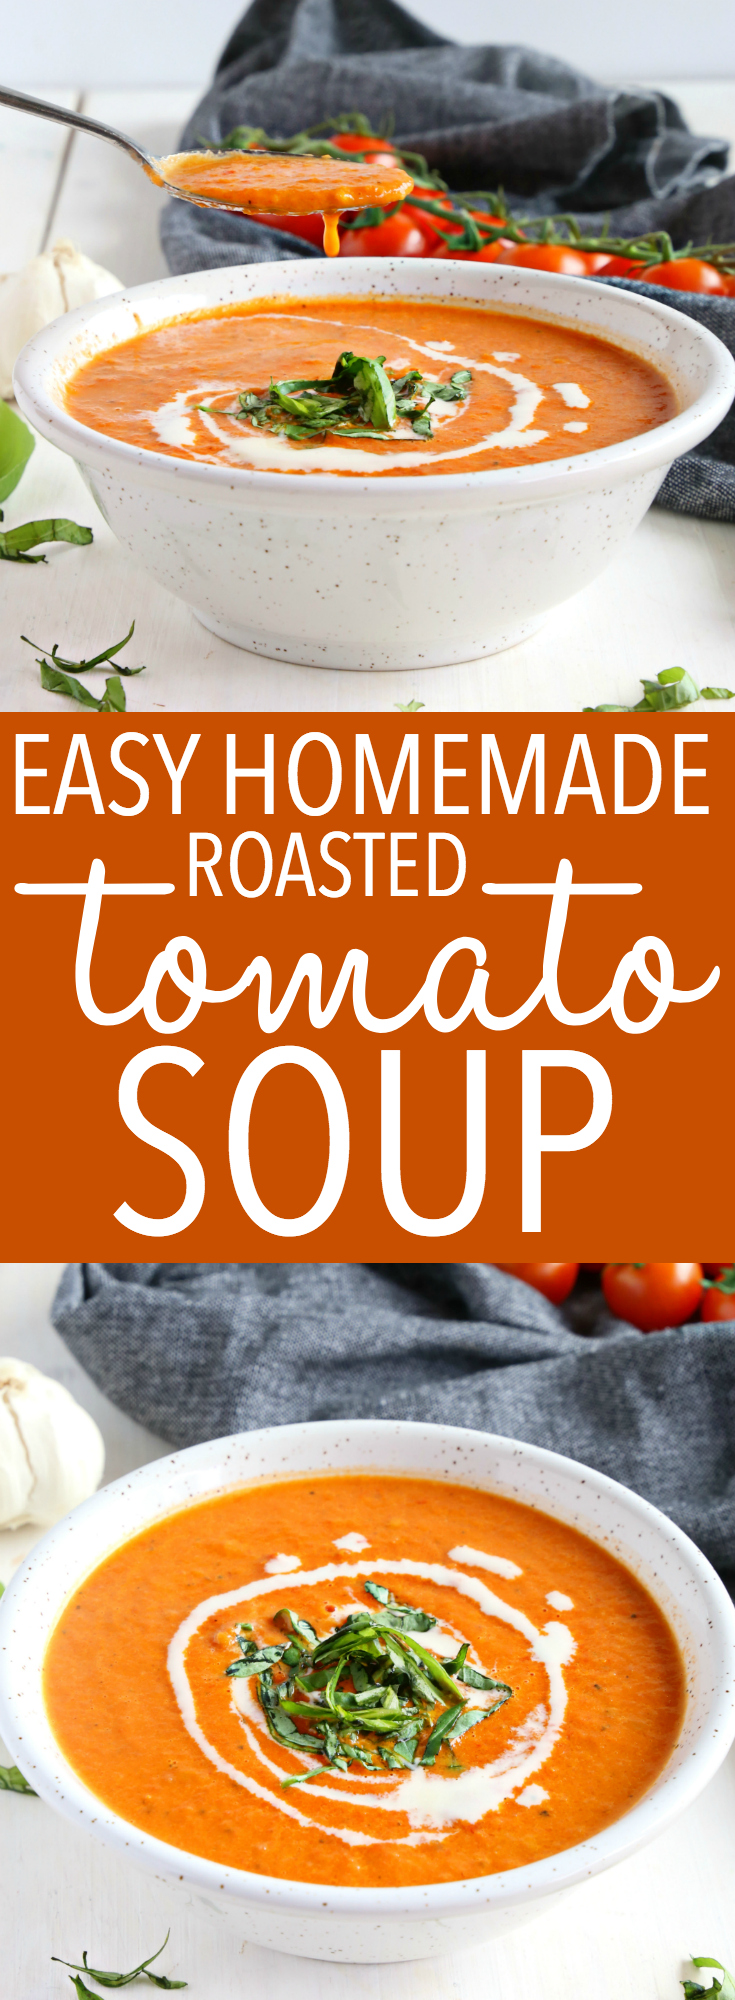 This Easy Homemade Roasted Tomato Soup is the perfect healthy, low-fat soup that's easy to make and so creamy! Make it vegan and dairy-free! Recipe from thebusybaker.ca! #tomatosoup #easyrecipe #homemade #tomato #soup #roasted #vegan #dairyfree #healthy #fall #harvest #canning #preserving #gardening via @busybakerblog